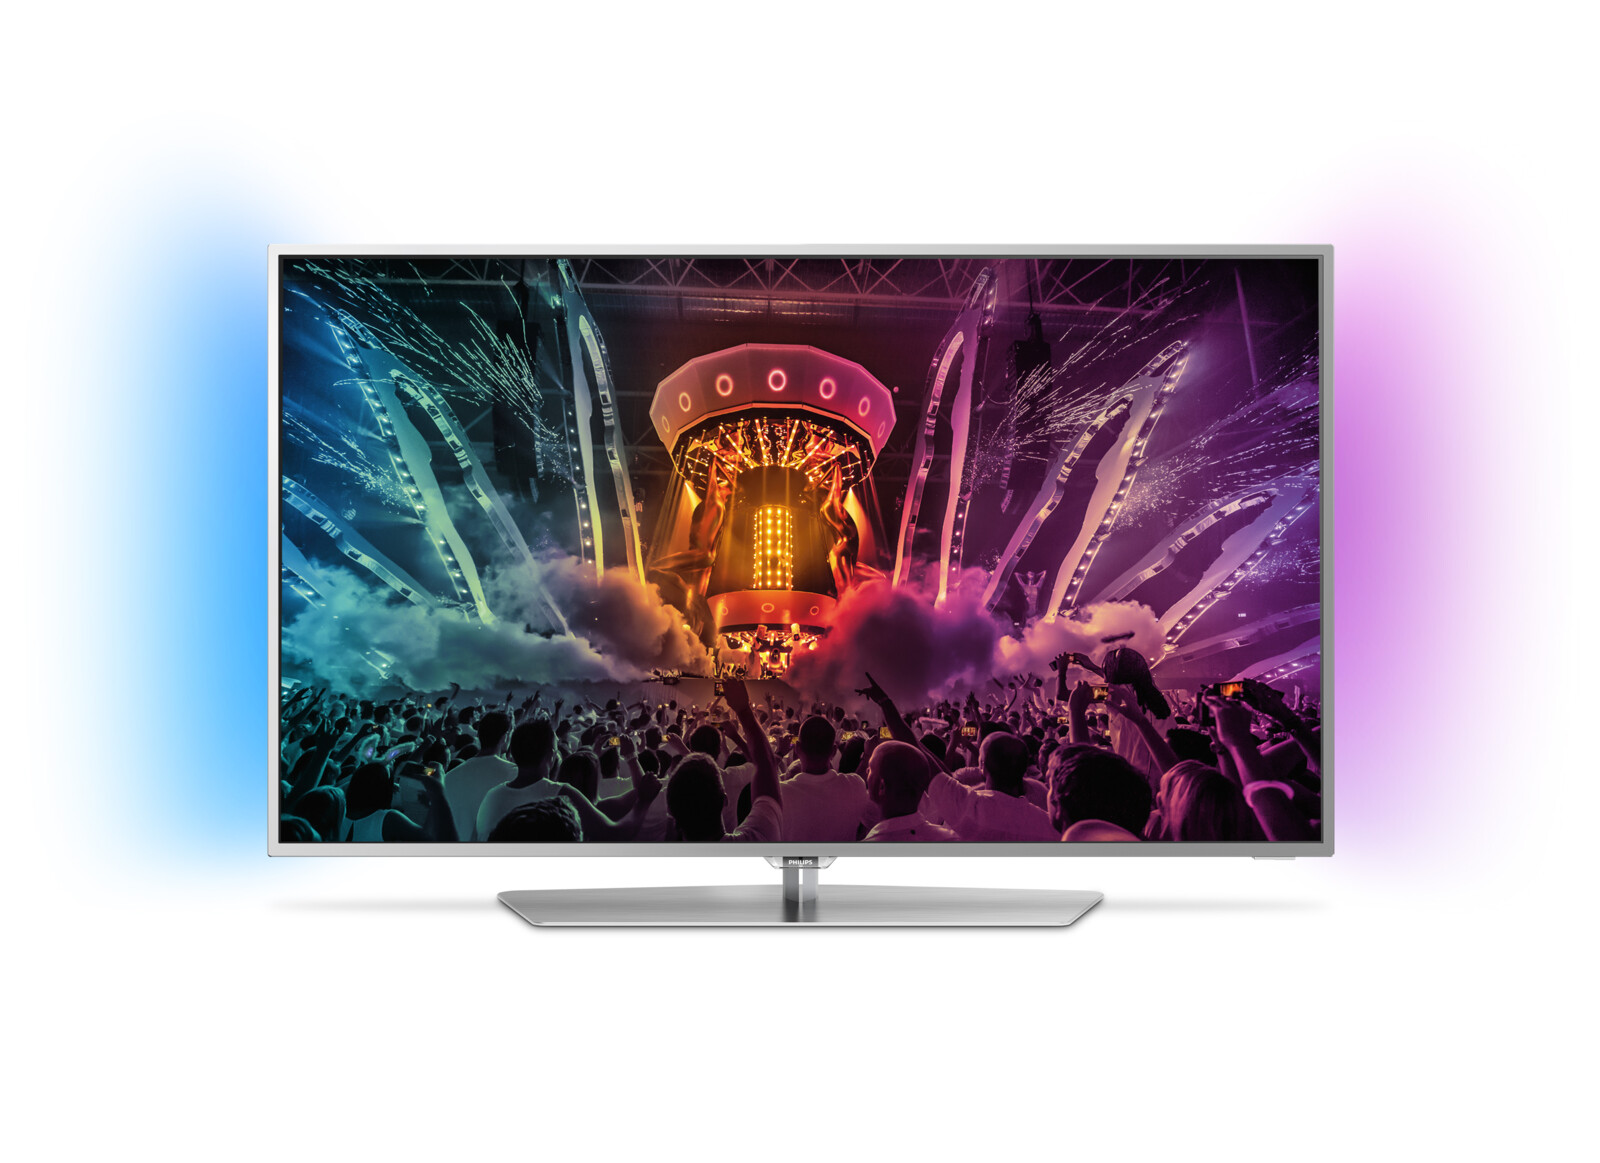 philips 49pus6551 12 led tv flat 49 zoll uhd 4k smart tv android tv ebay. Black Bedroom Furniture Sets. Home Design Ideas